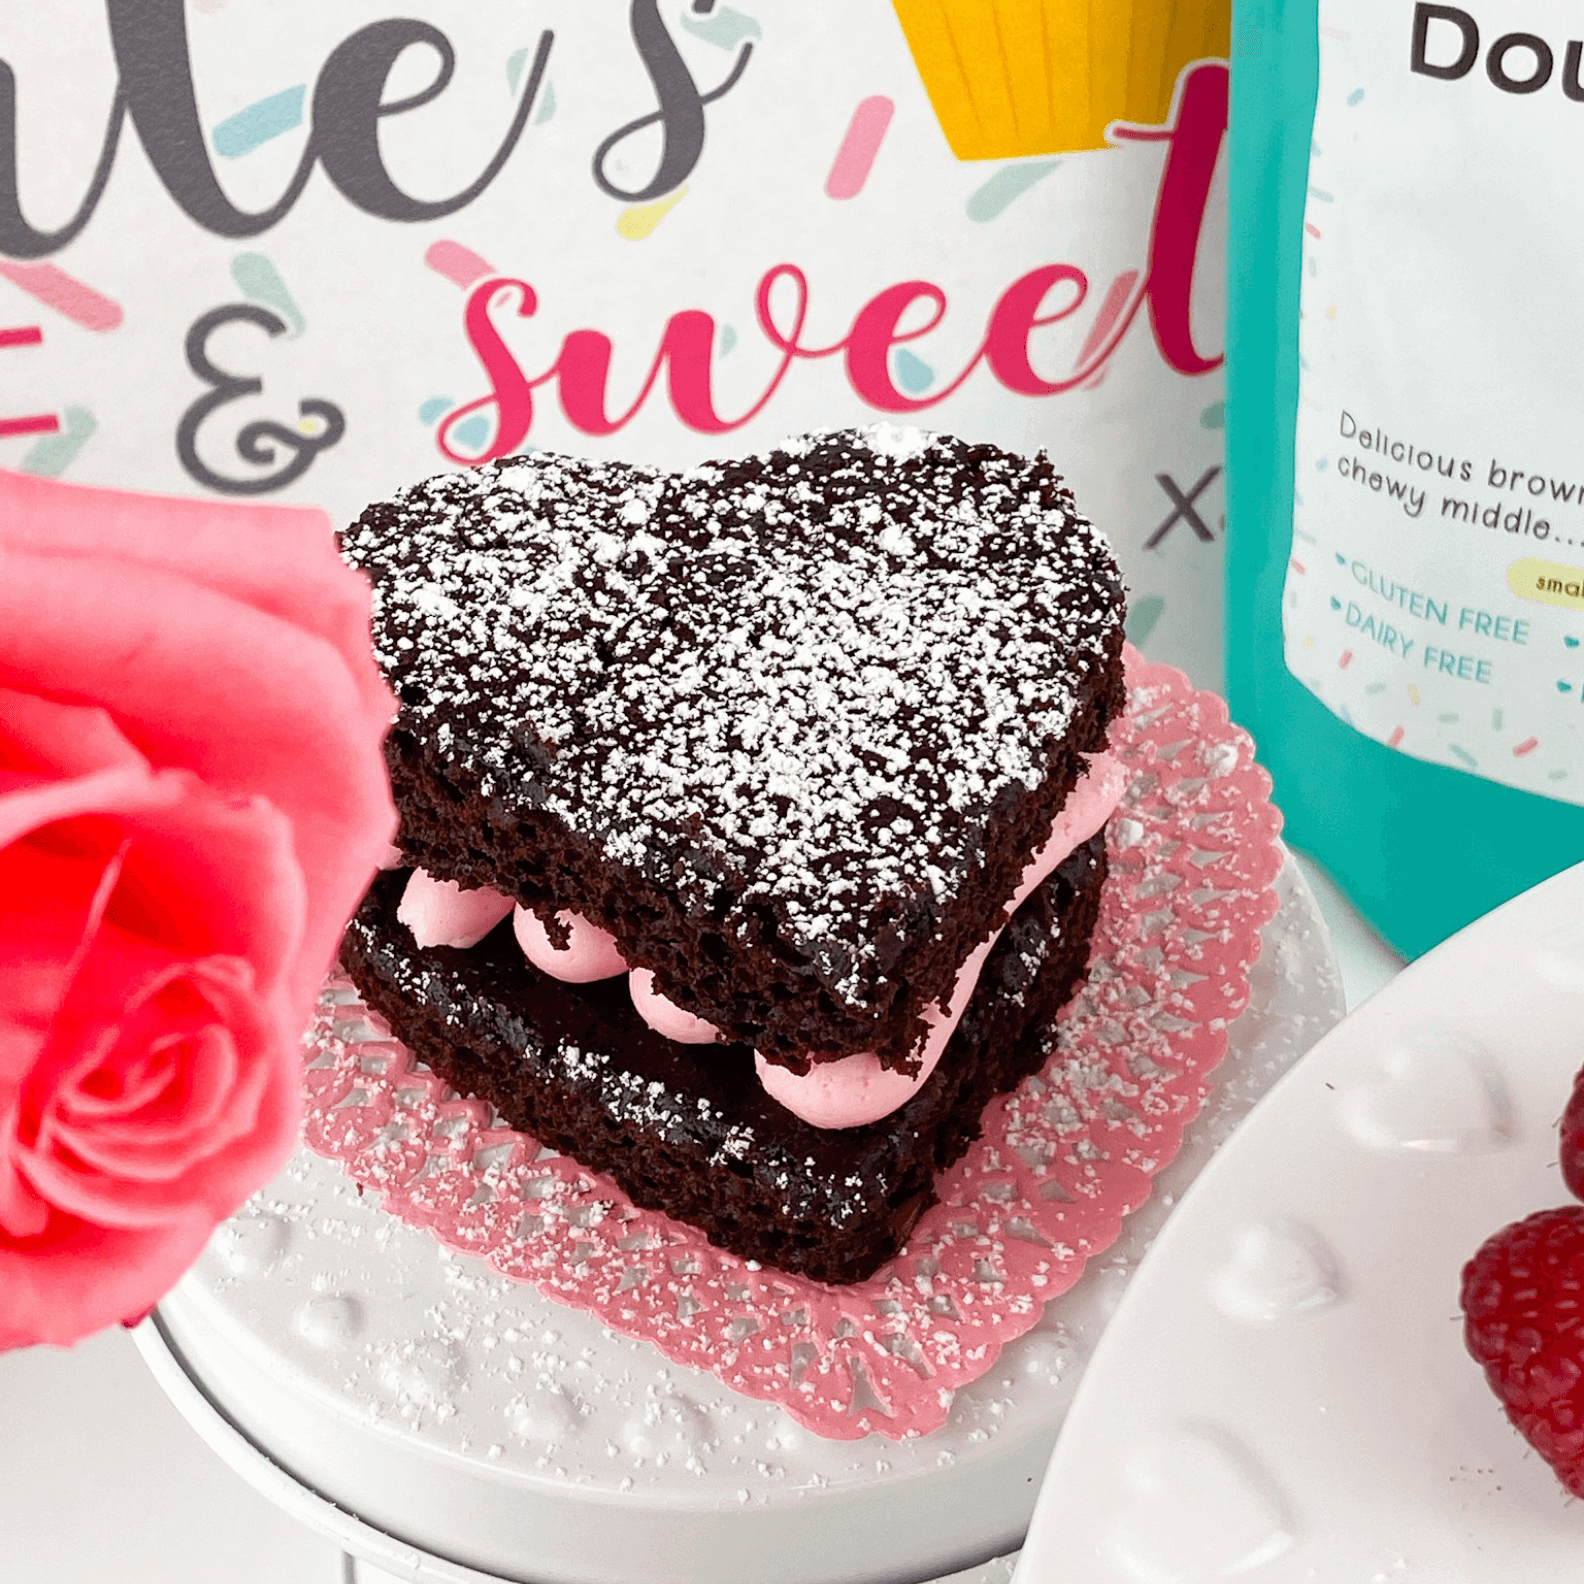 Kate's Safe and Sweet - Raspberry Brownies with Box-